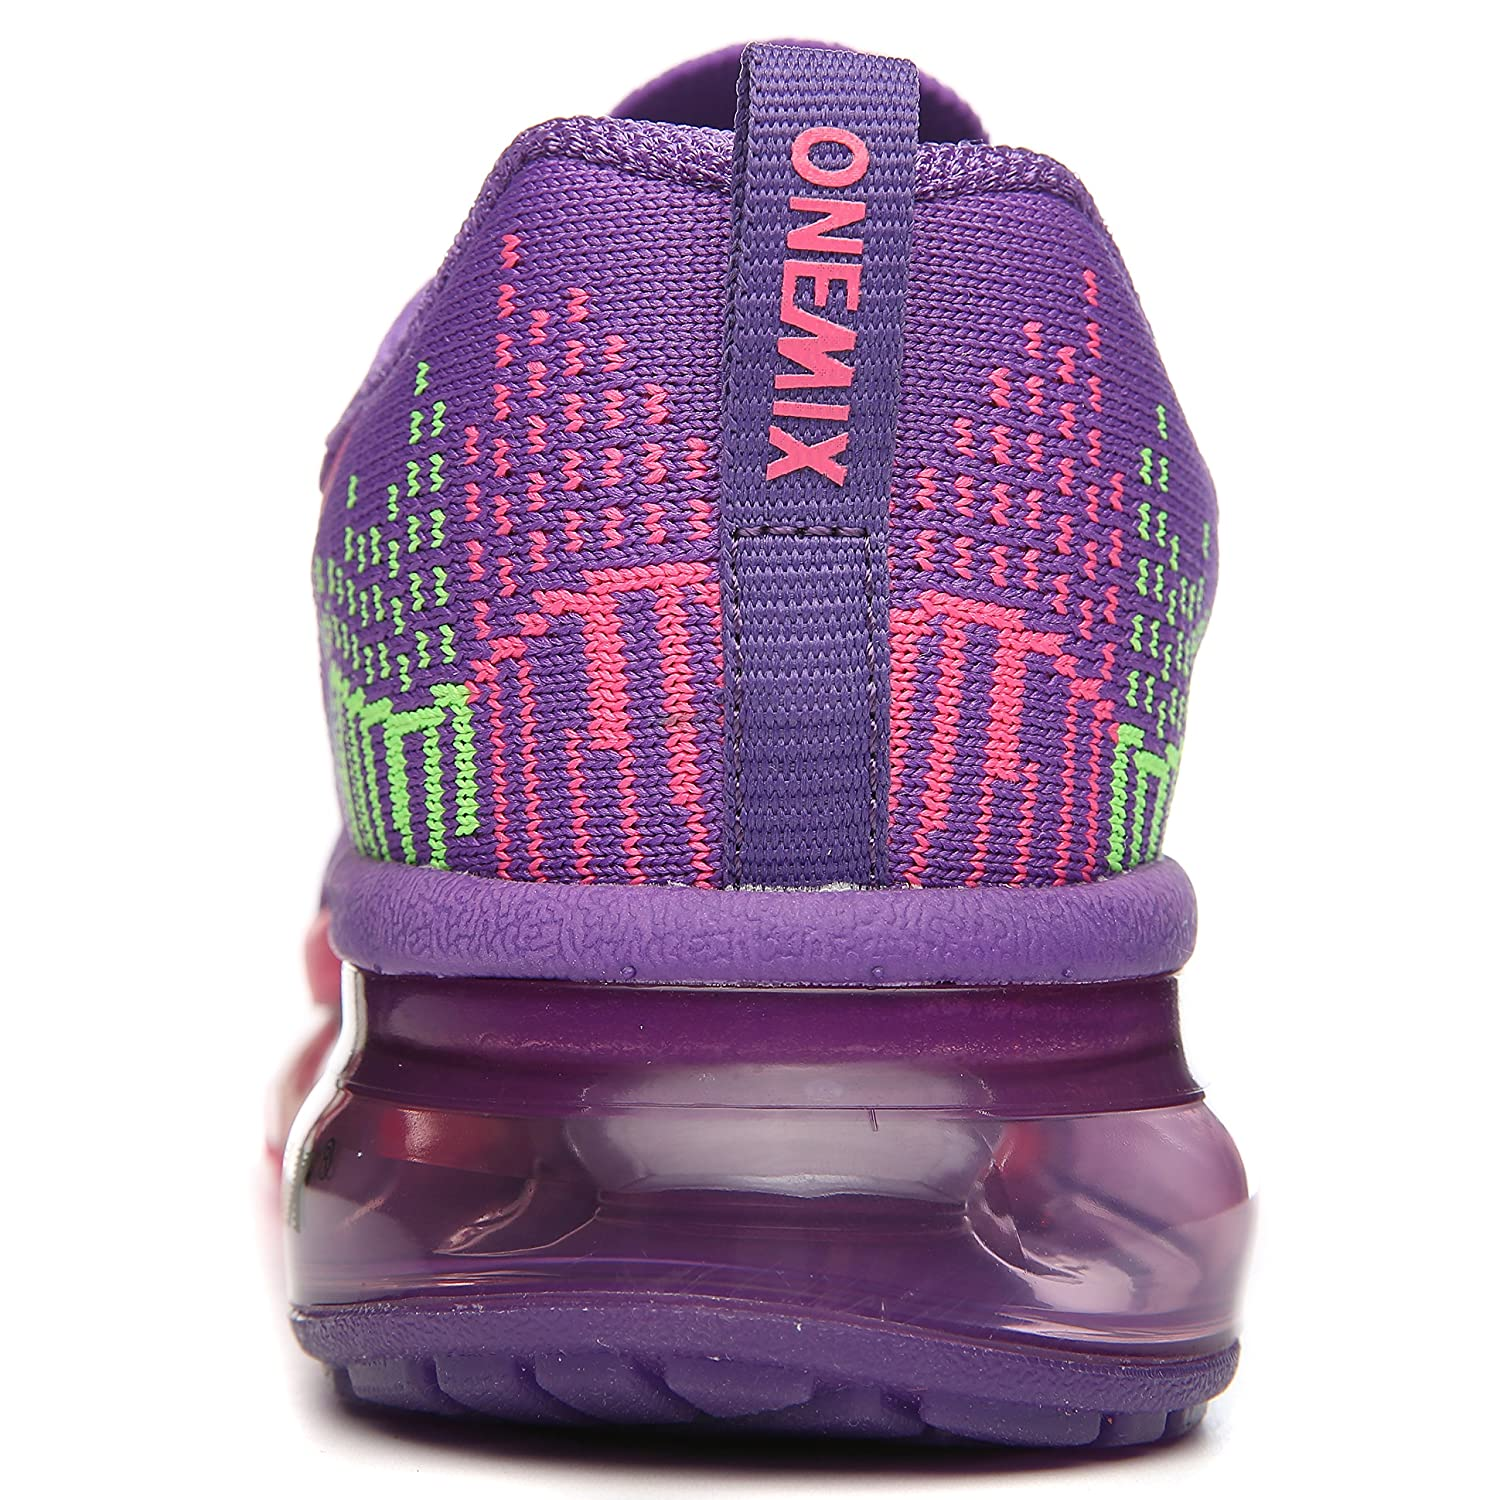 ONEMIX Womens Running Air Cushion Outdoor Sport Running Womens Shoes Lightweight Casual Sneakers B0789KBCX6 Men 5.5(M)US 38EU/Women 7(M)US 38EUR|Purple/Red 69c5f0